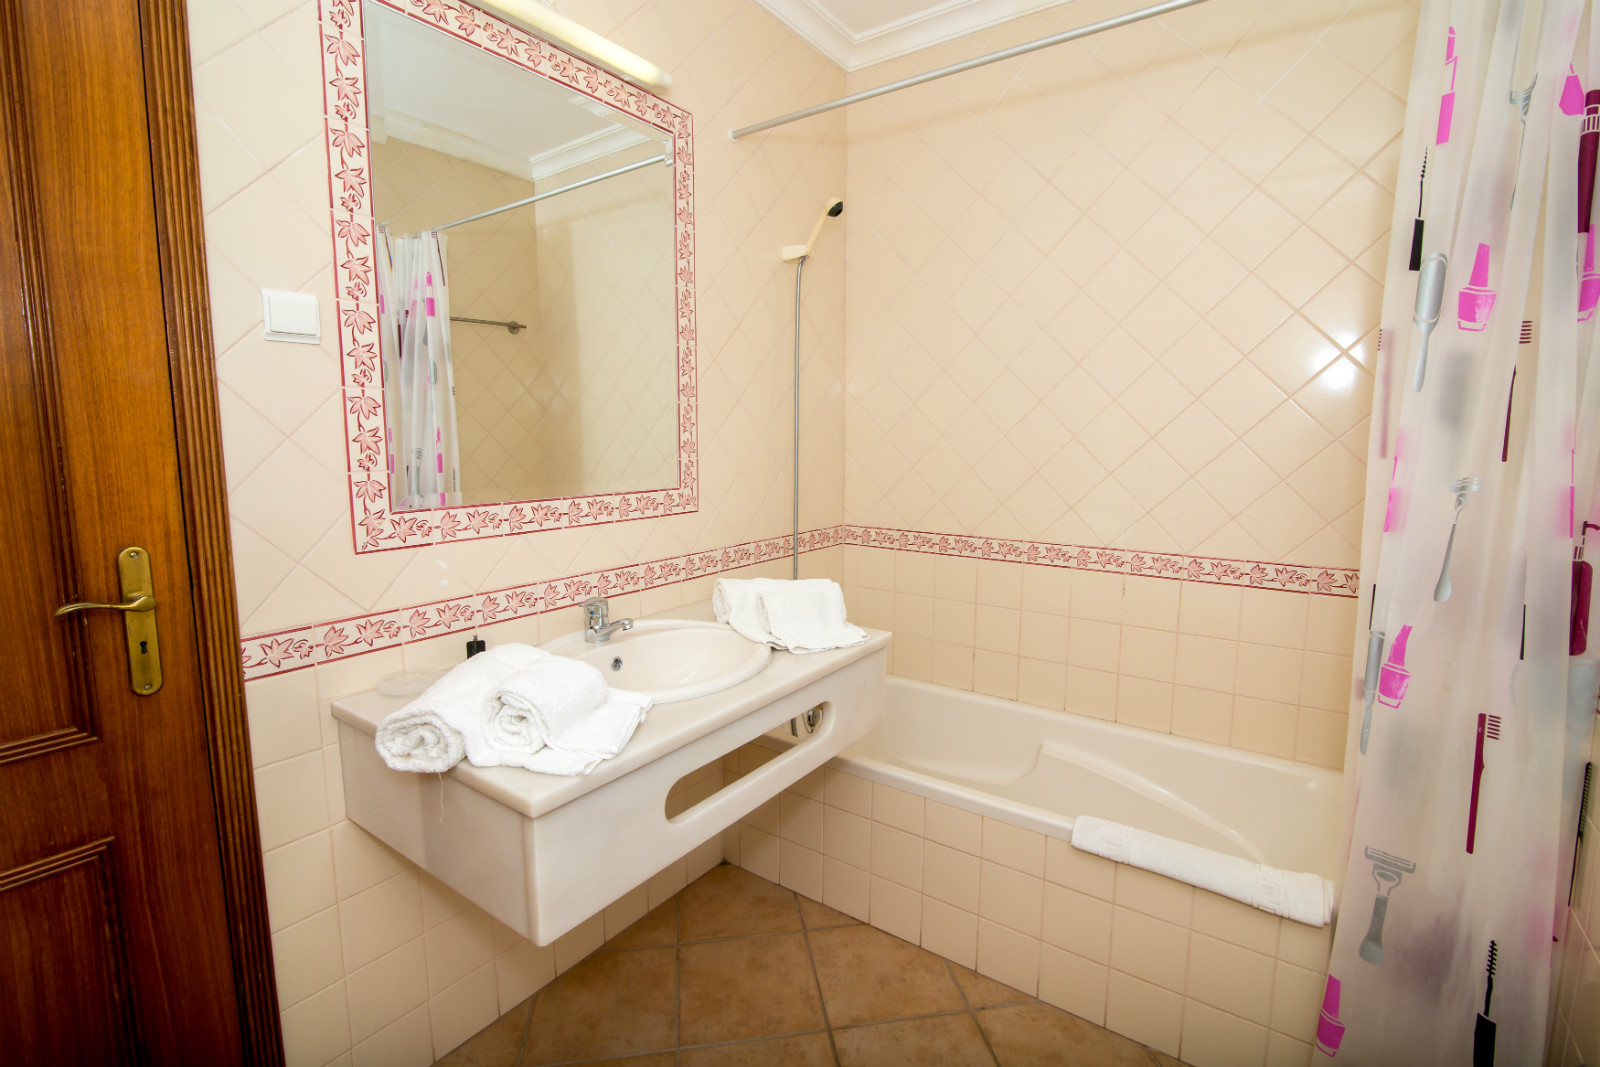 1st floor, beautiful, full bathroom with tile flooring and marble basin.